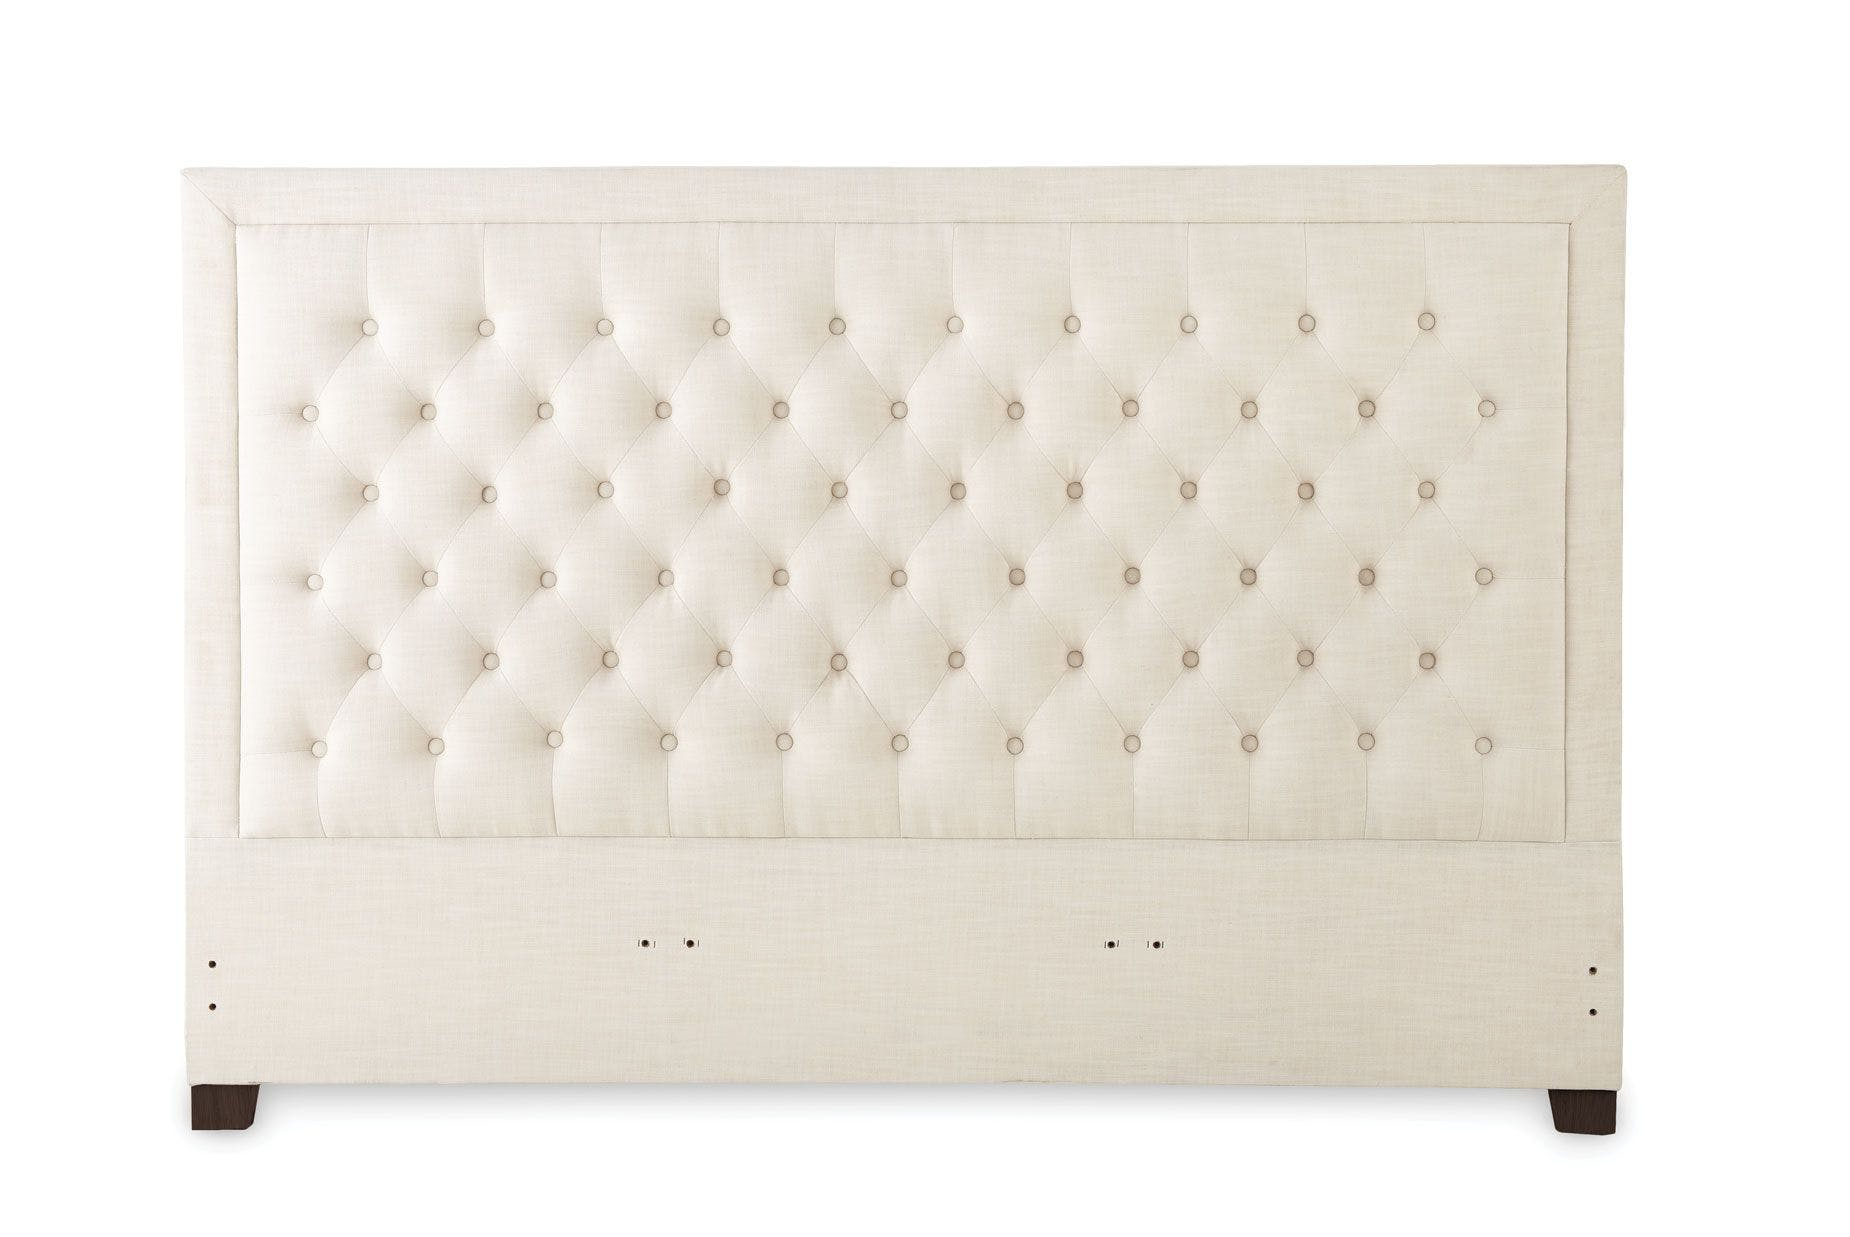 Picture of: Steve Silver Bedroom Isadora Queen White Upholstered Headboard Id890qhbw Carol House Furniture